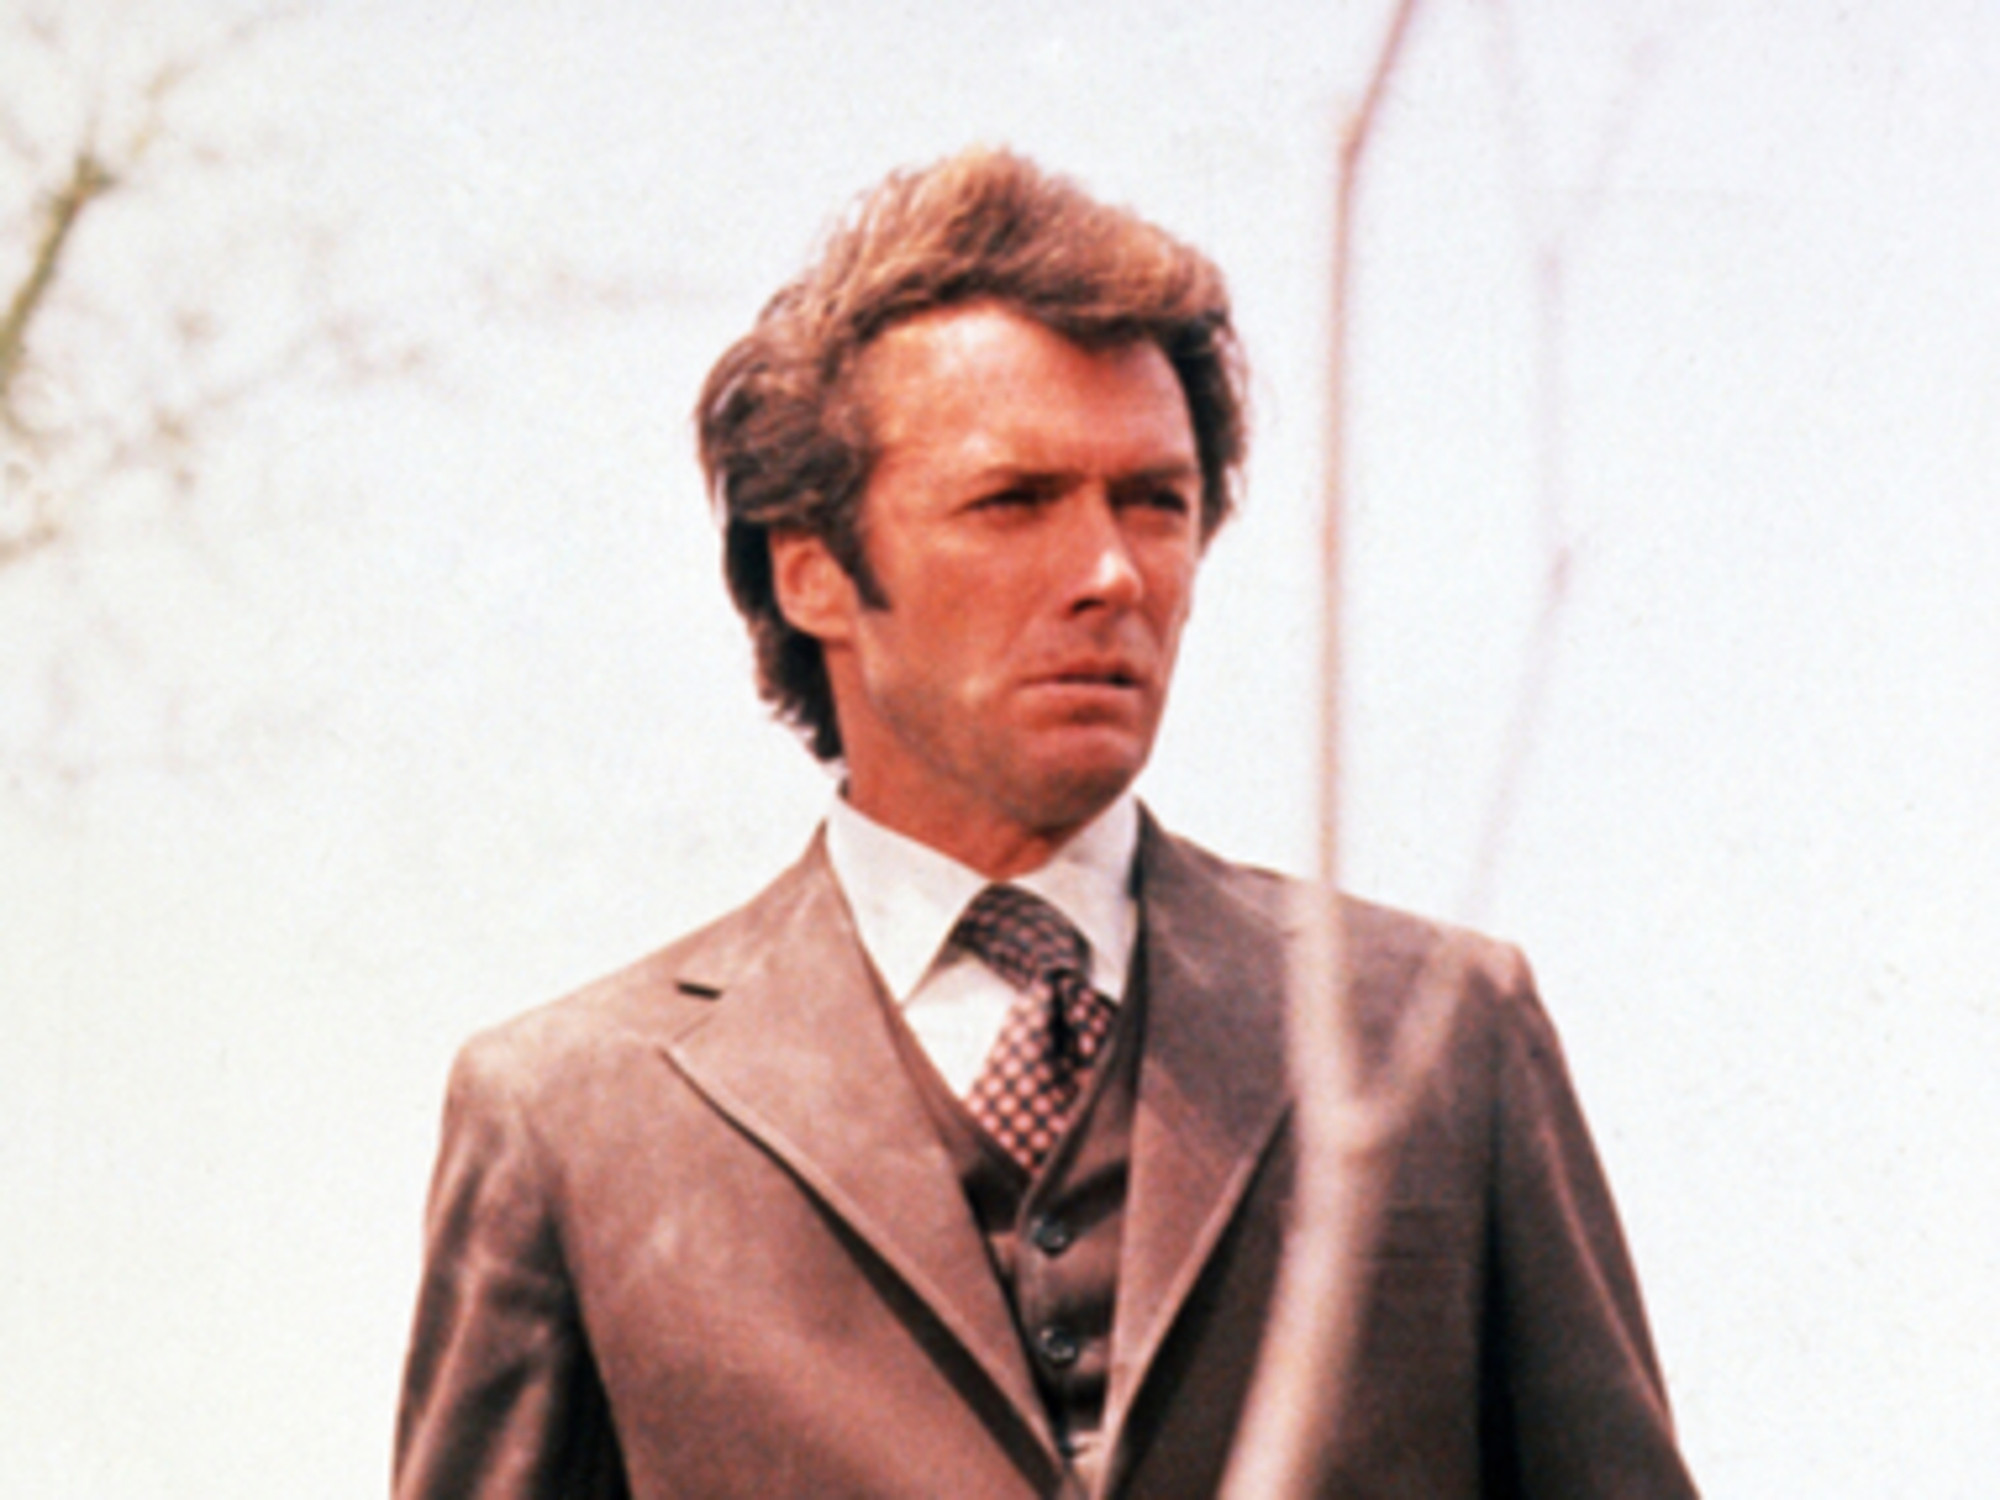 Dirty Harry. 1971. USA. Directed by Don Siegel